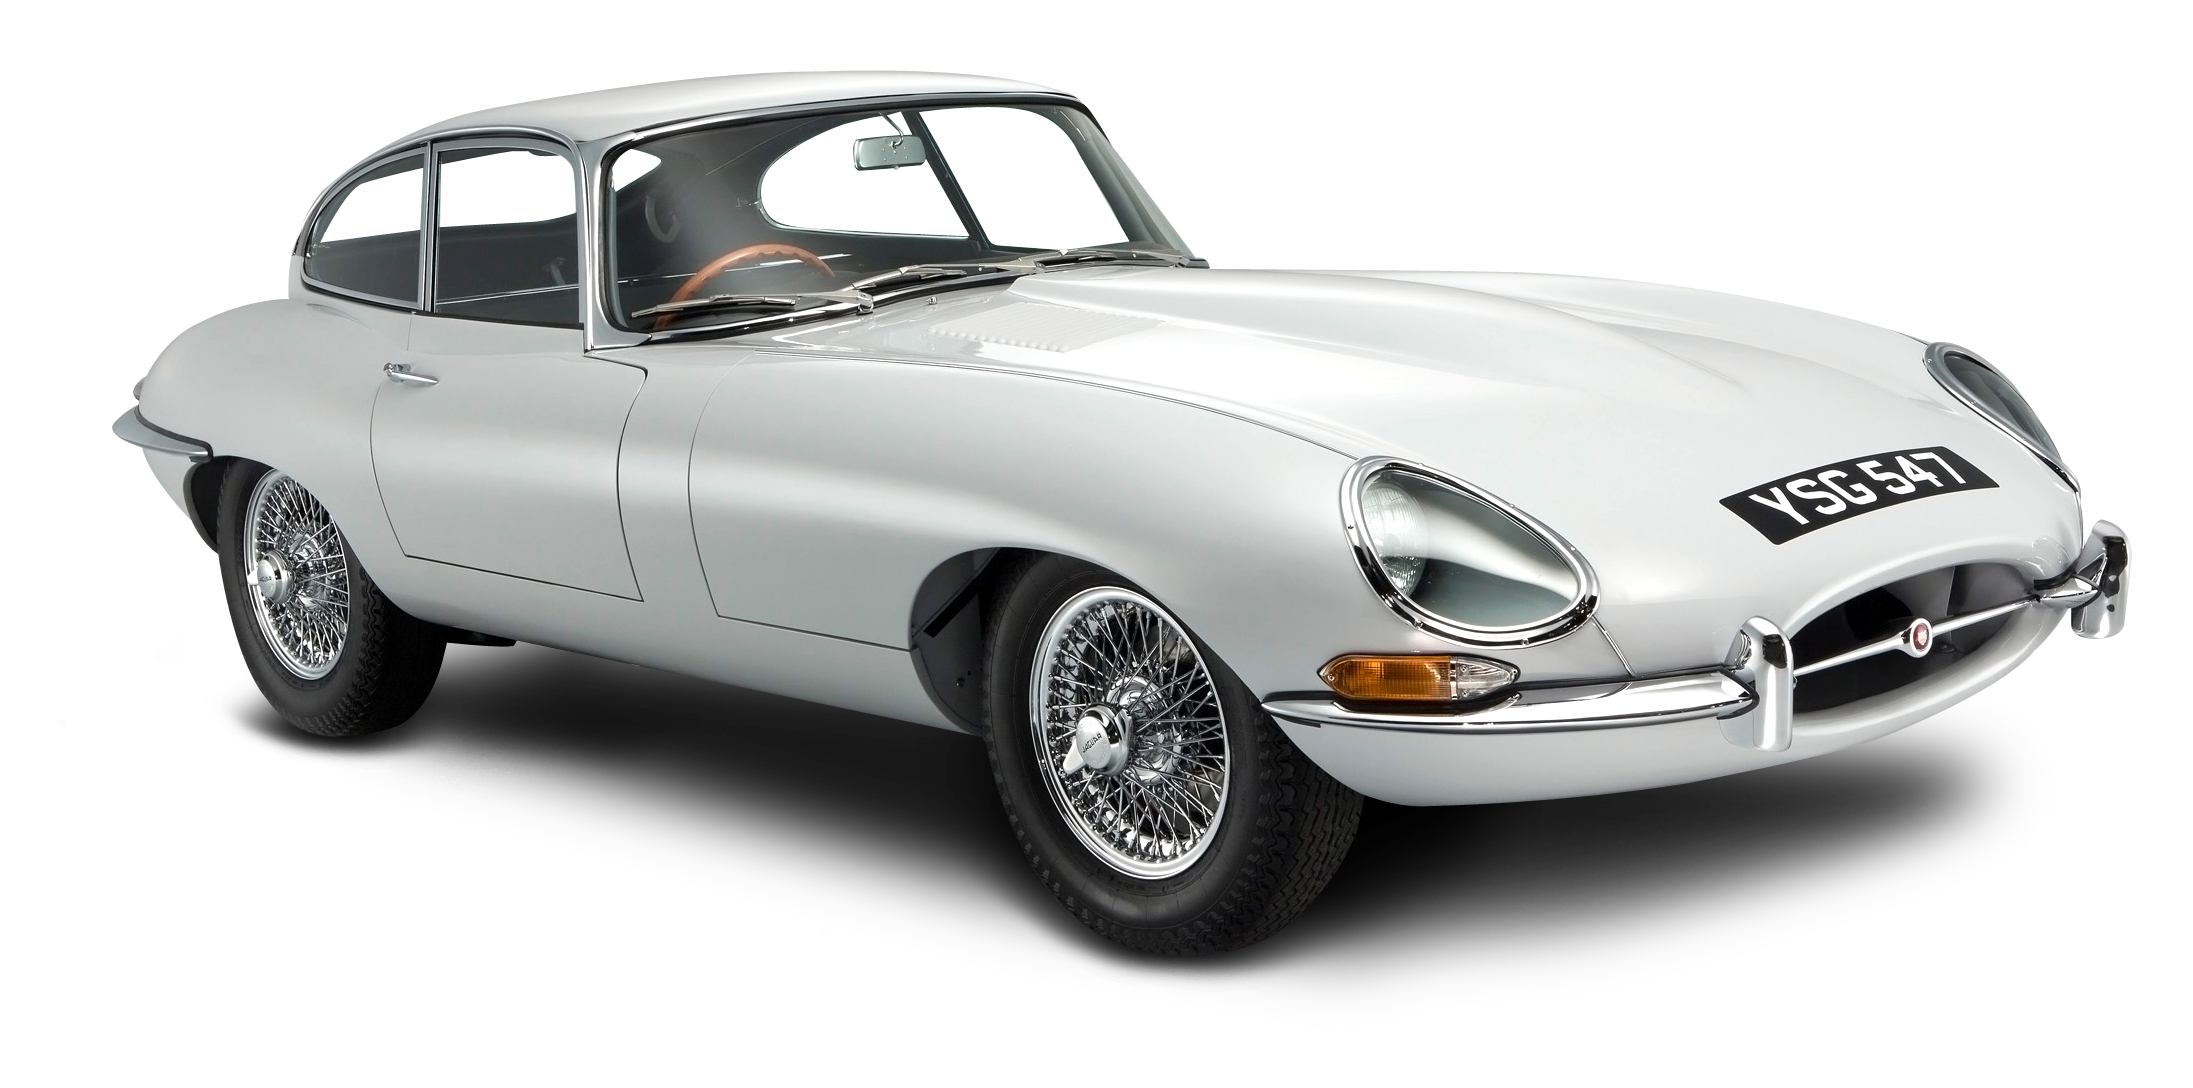 Erwin Wurm Fat Convertible moreover The Old Historical Center as well Nita The Russian Super Woman Photo additionally Album Cadillac likewise Jaguar E Type Coupe Car   Image. on old car fashion